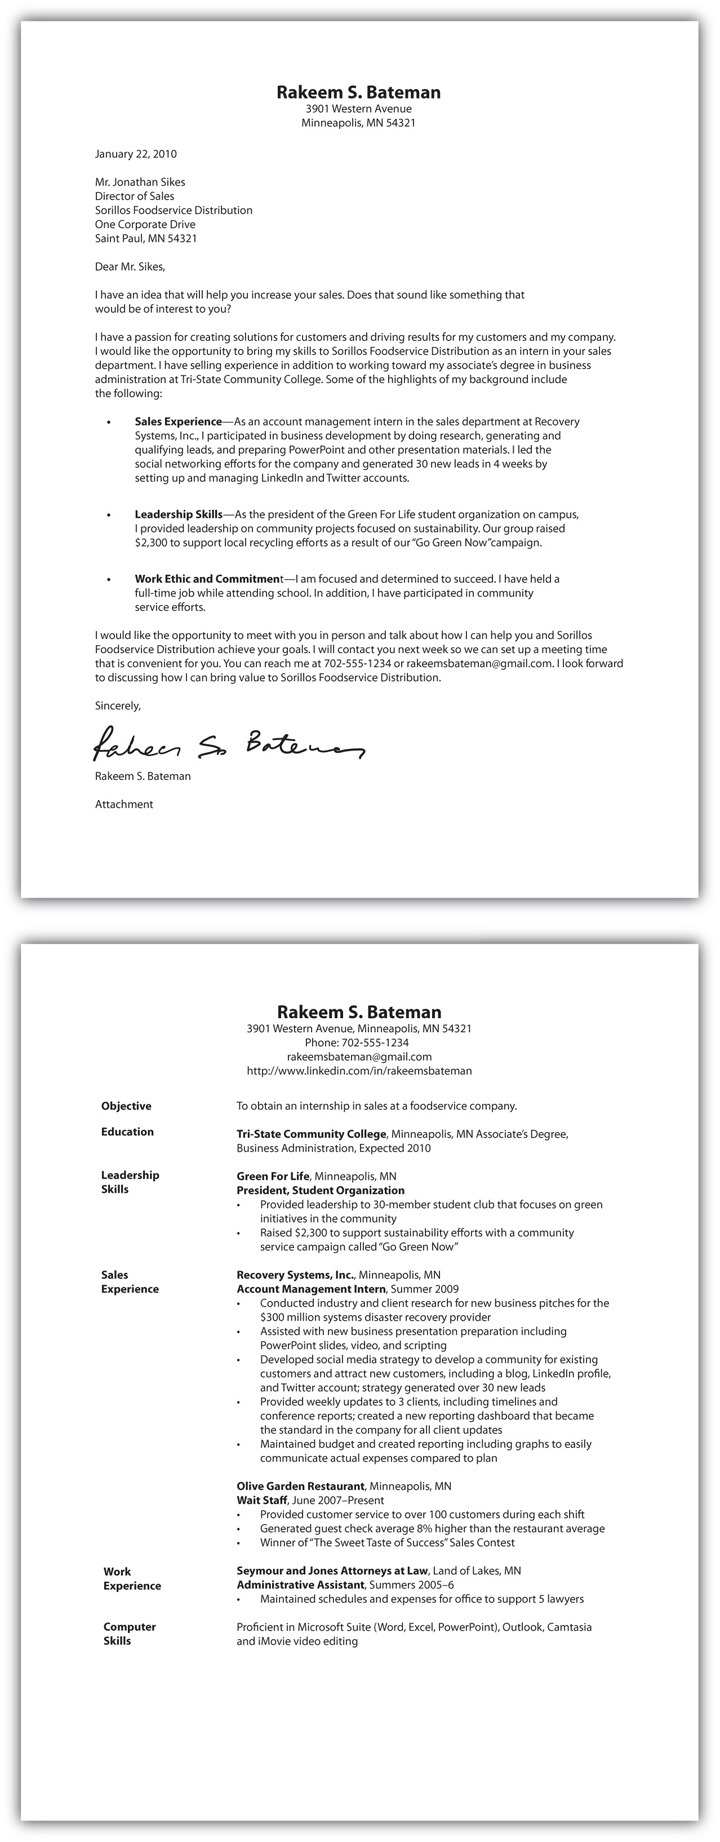 resume cover letter one document